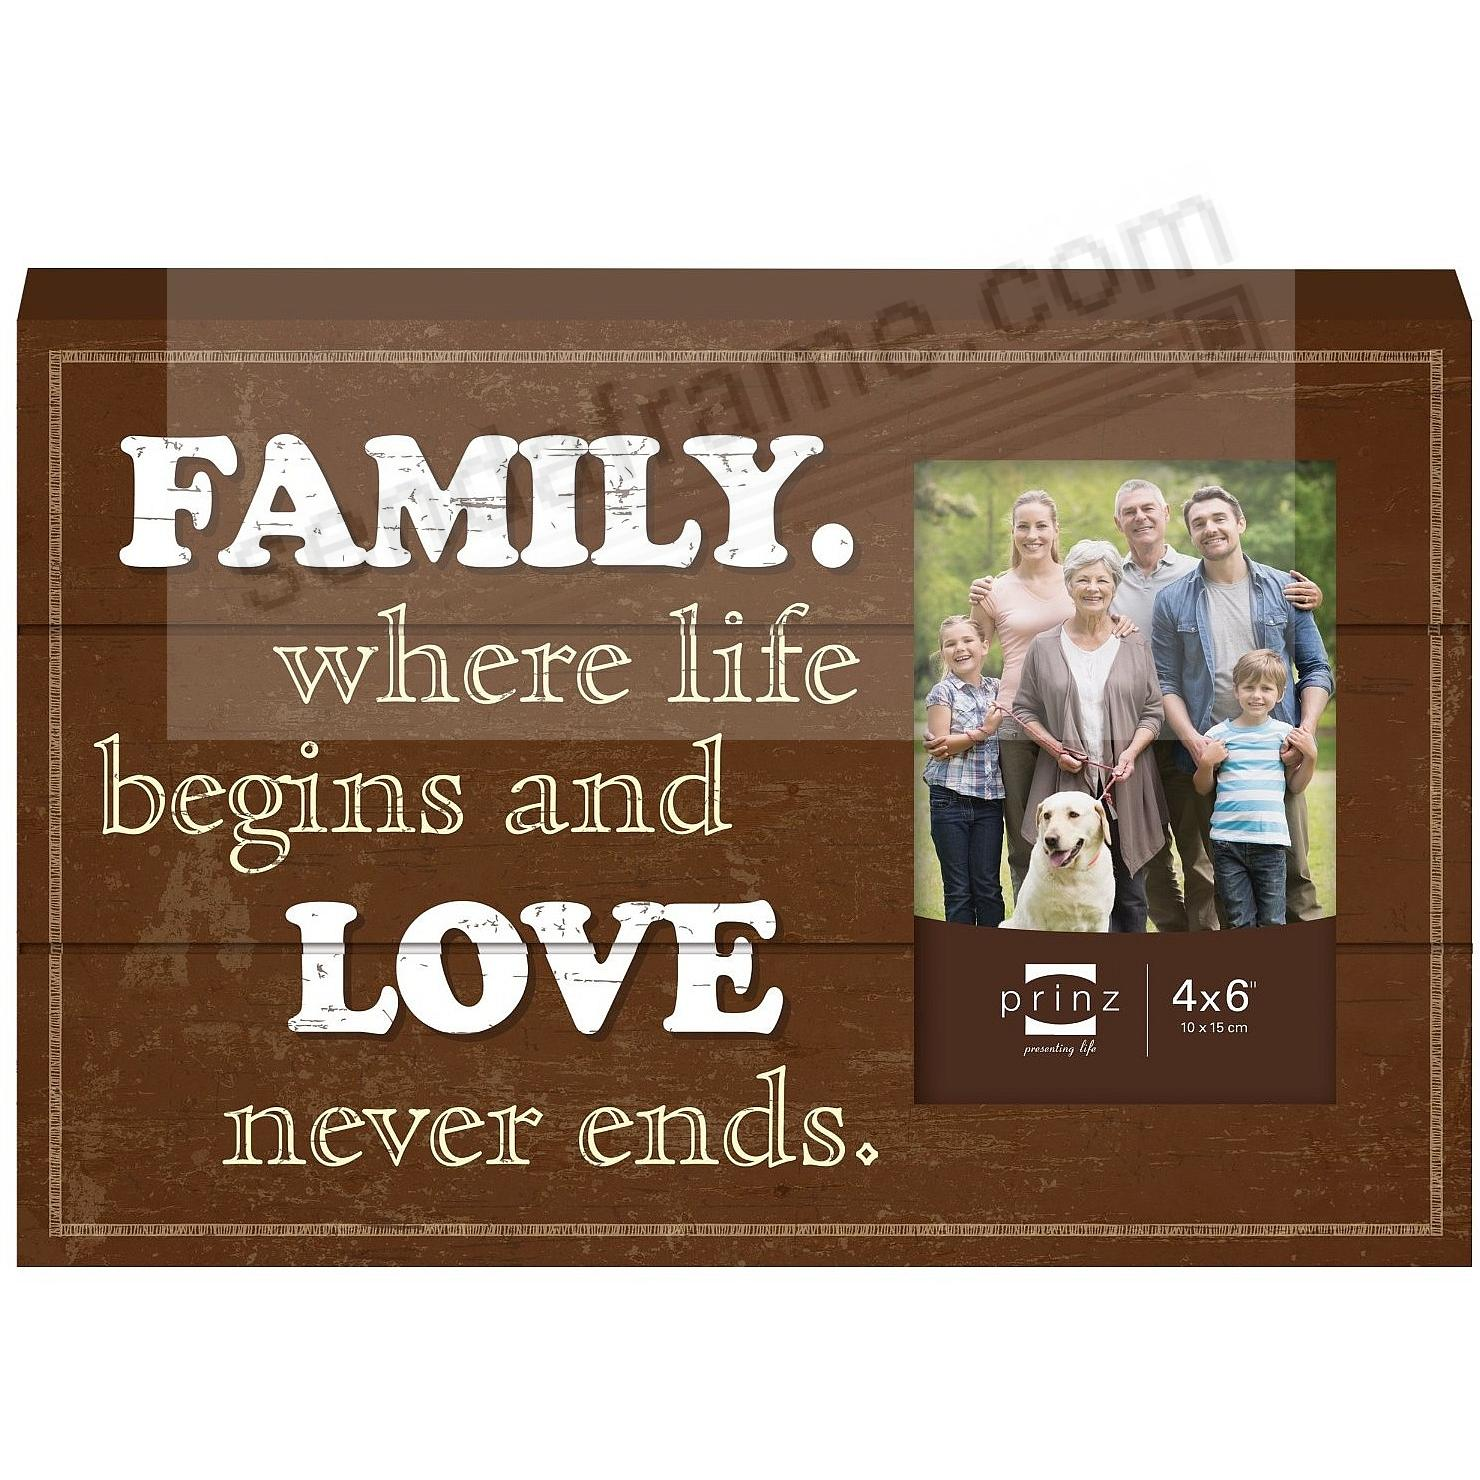 FAMILY Wood Block Frame by Prinz® - Picture Frames, Photo Albums ...